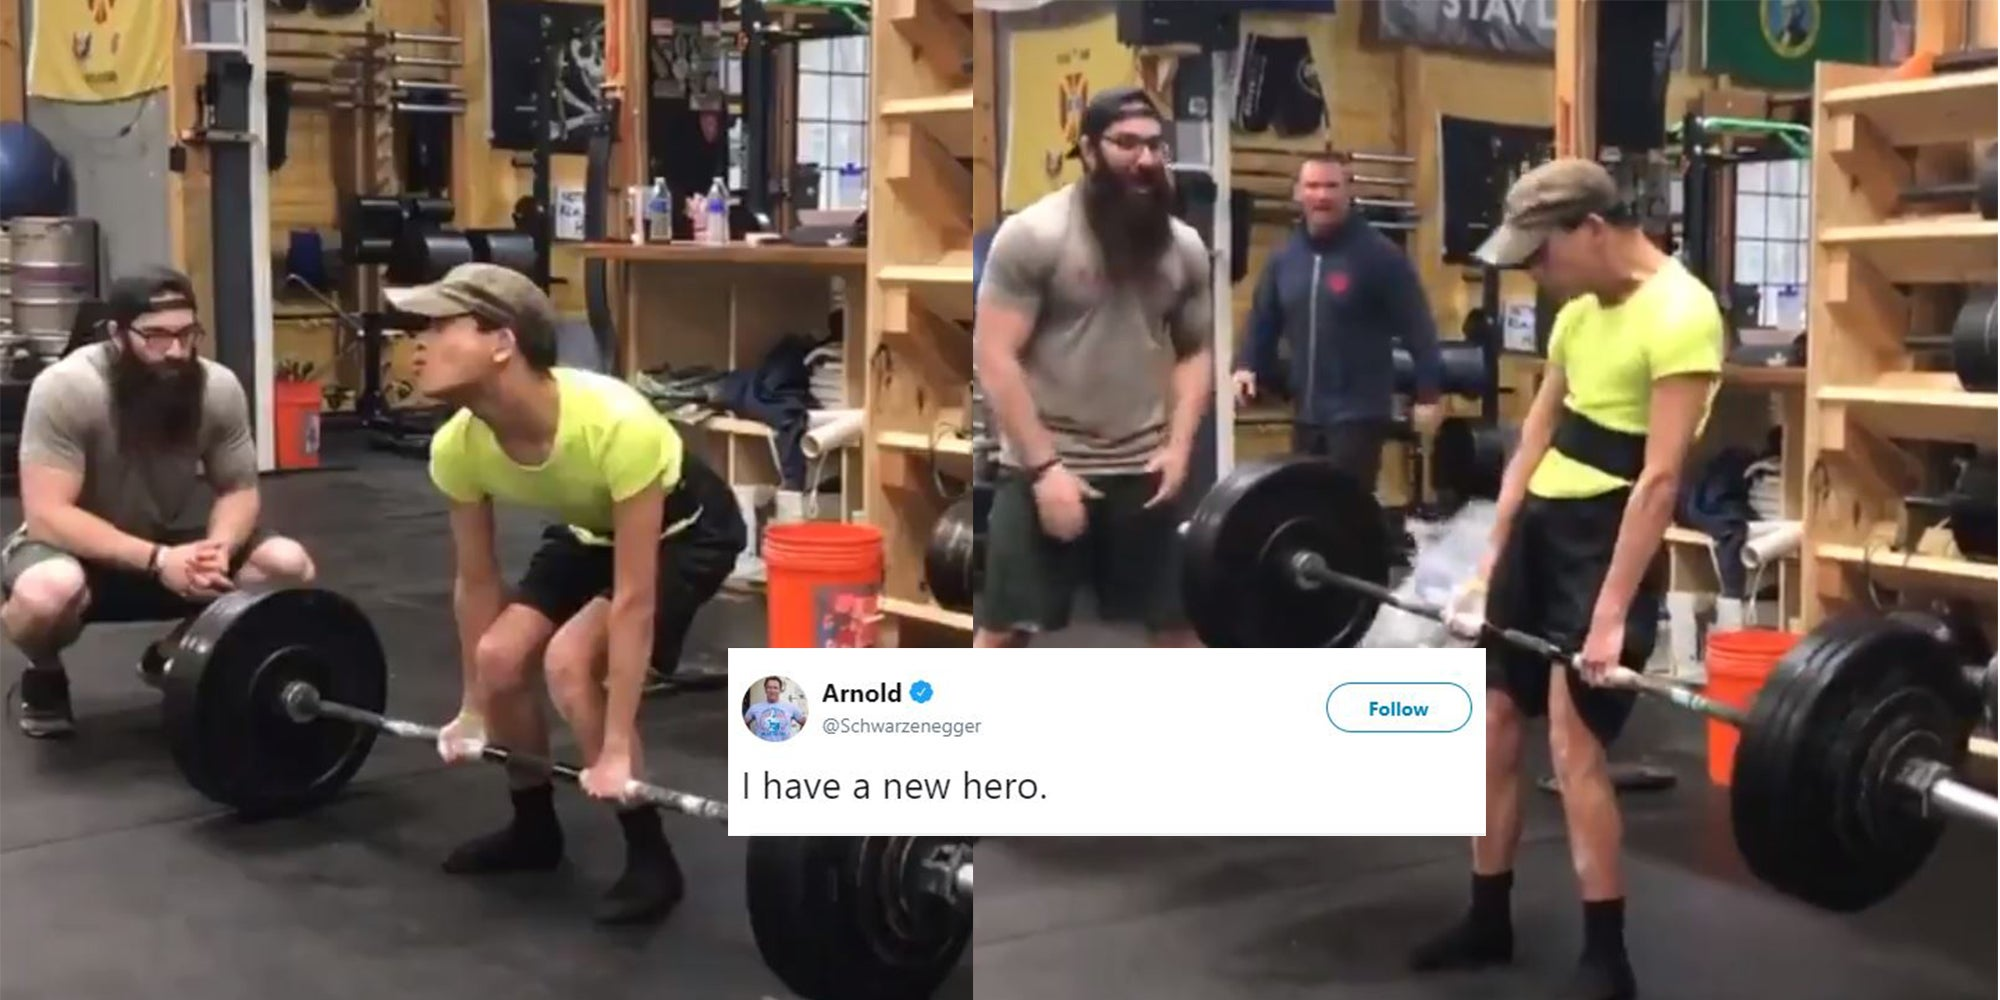 Athlete with cerebral palsy deadlifts 200 pounds and Arnold